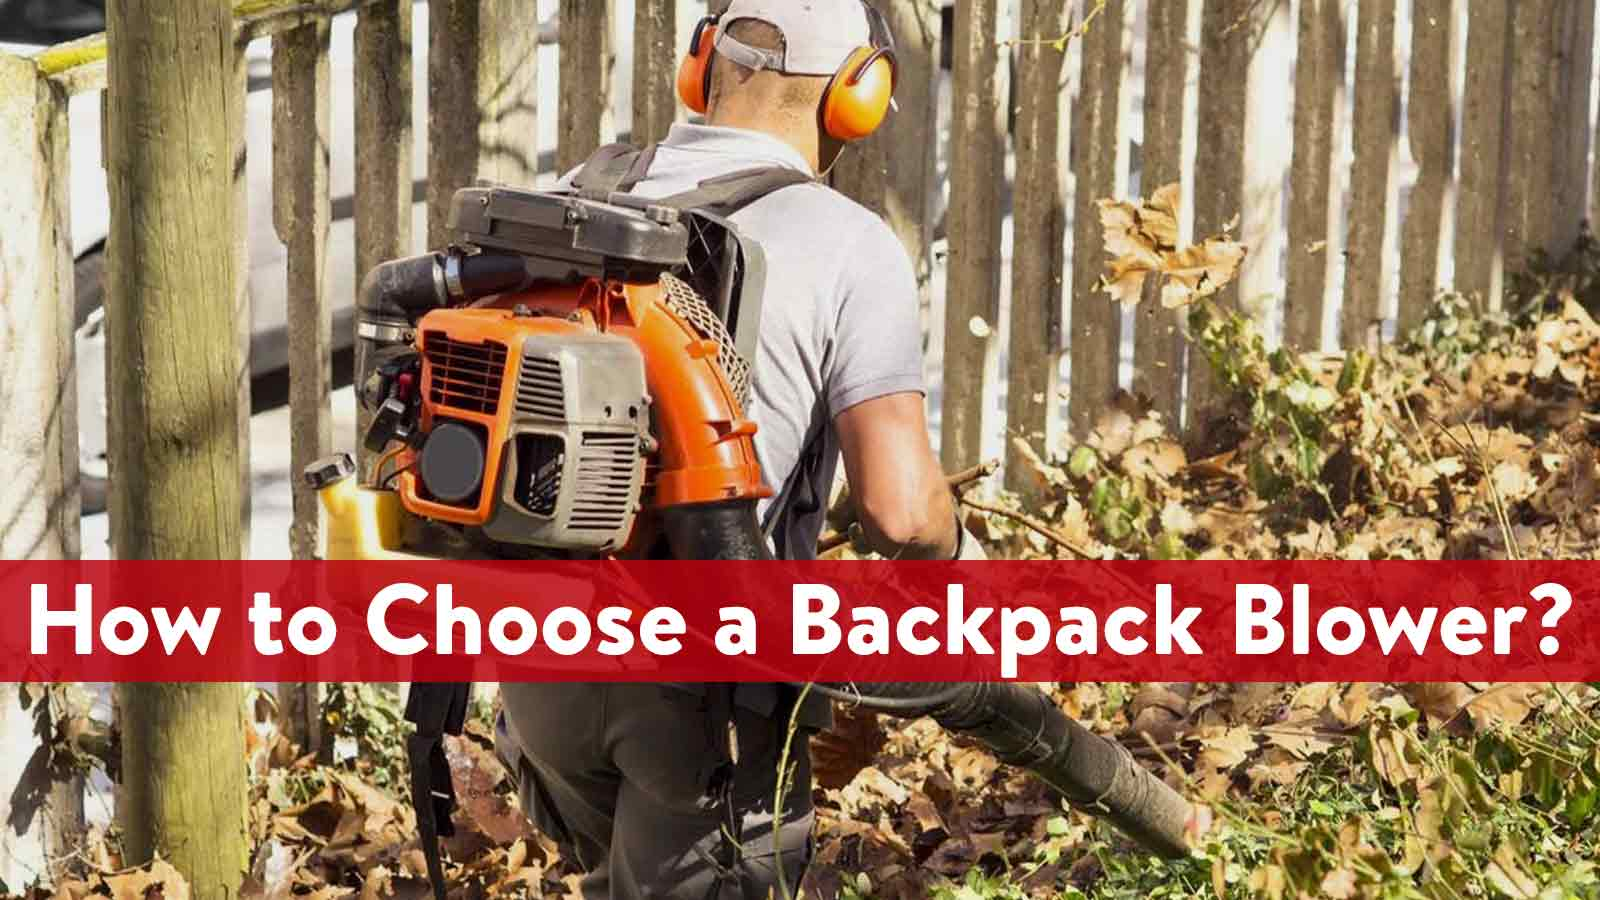 How to Choose the Right Backpack Blower